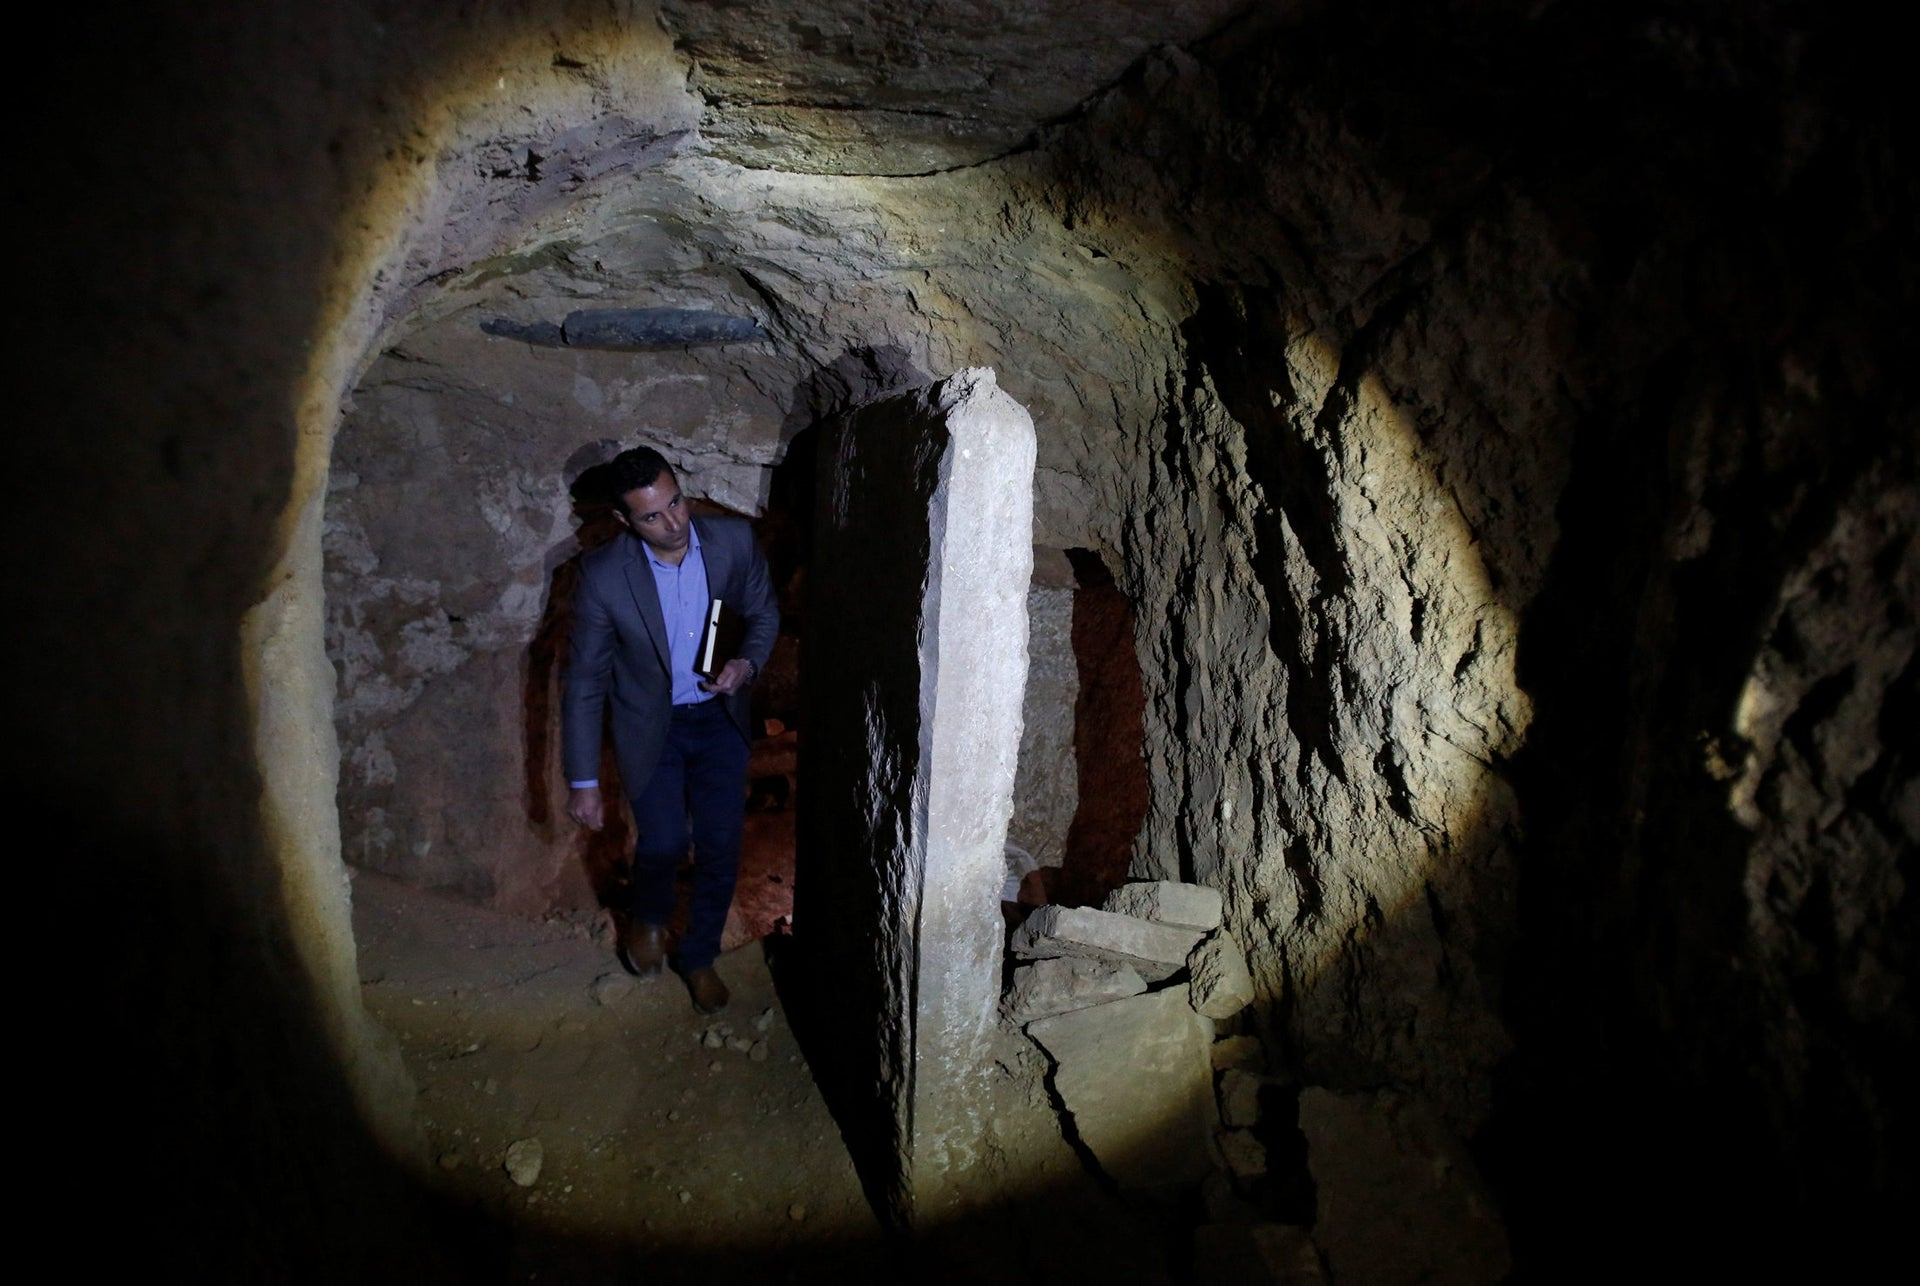 Archaeologist Musab Mohammed Jassim shows artifacts and archaeological pieces in a tunnel network running under the Mosque of Prophet Jonah, Nabi Yunus in Arabic, in eastern Mosul, Iraq, March 9, 2017.